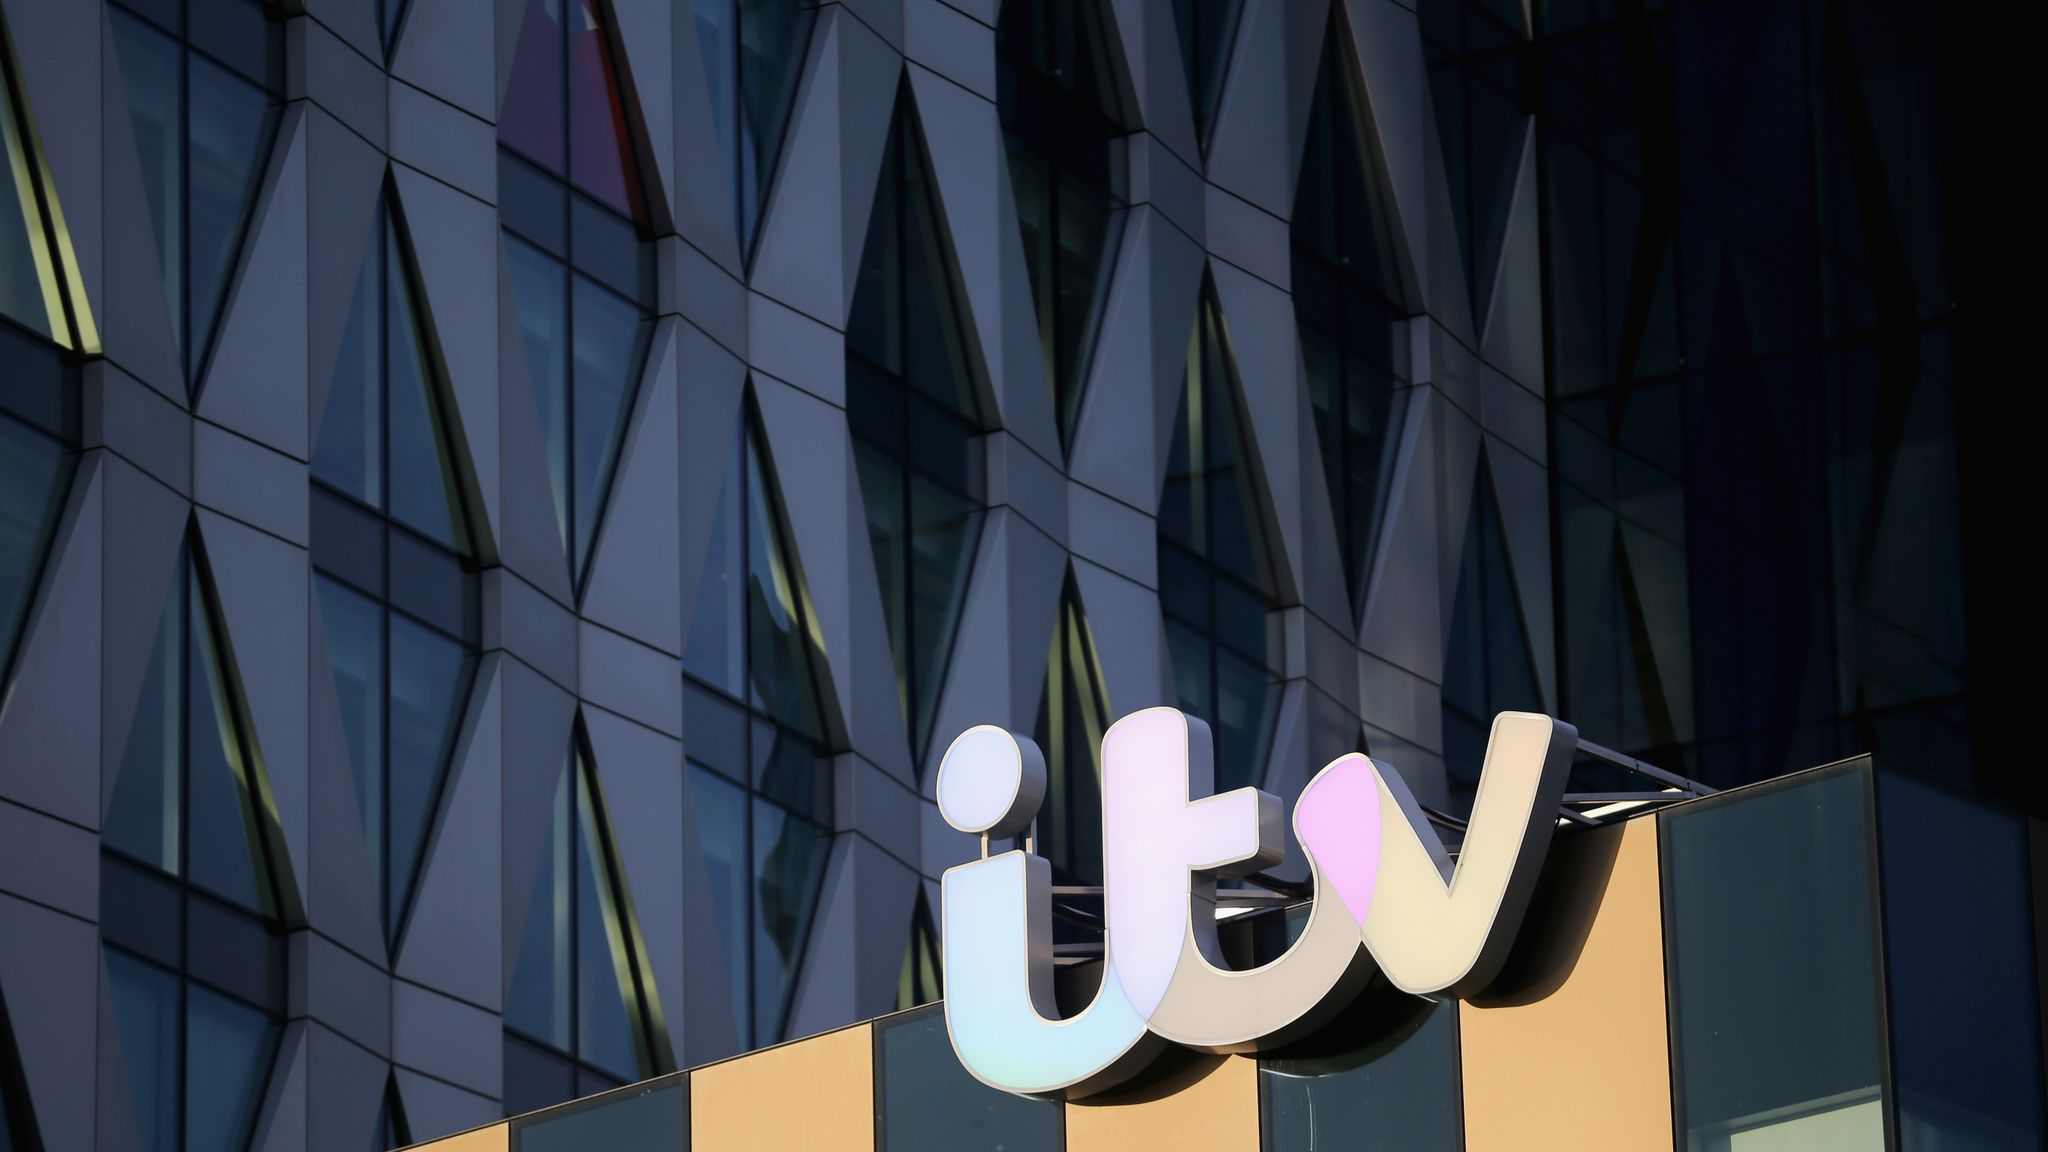 Itv competition winners online betting sky sports live betting shows